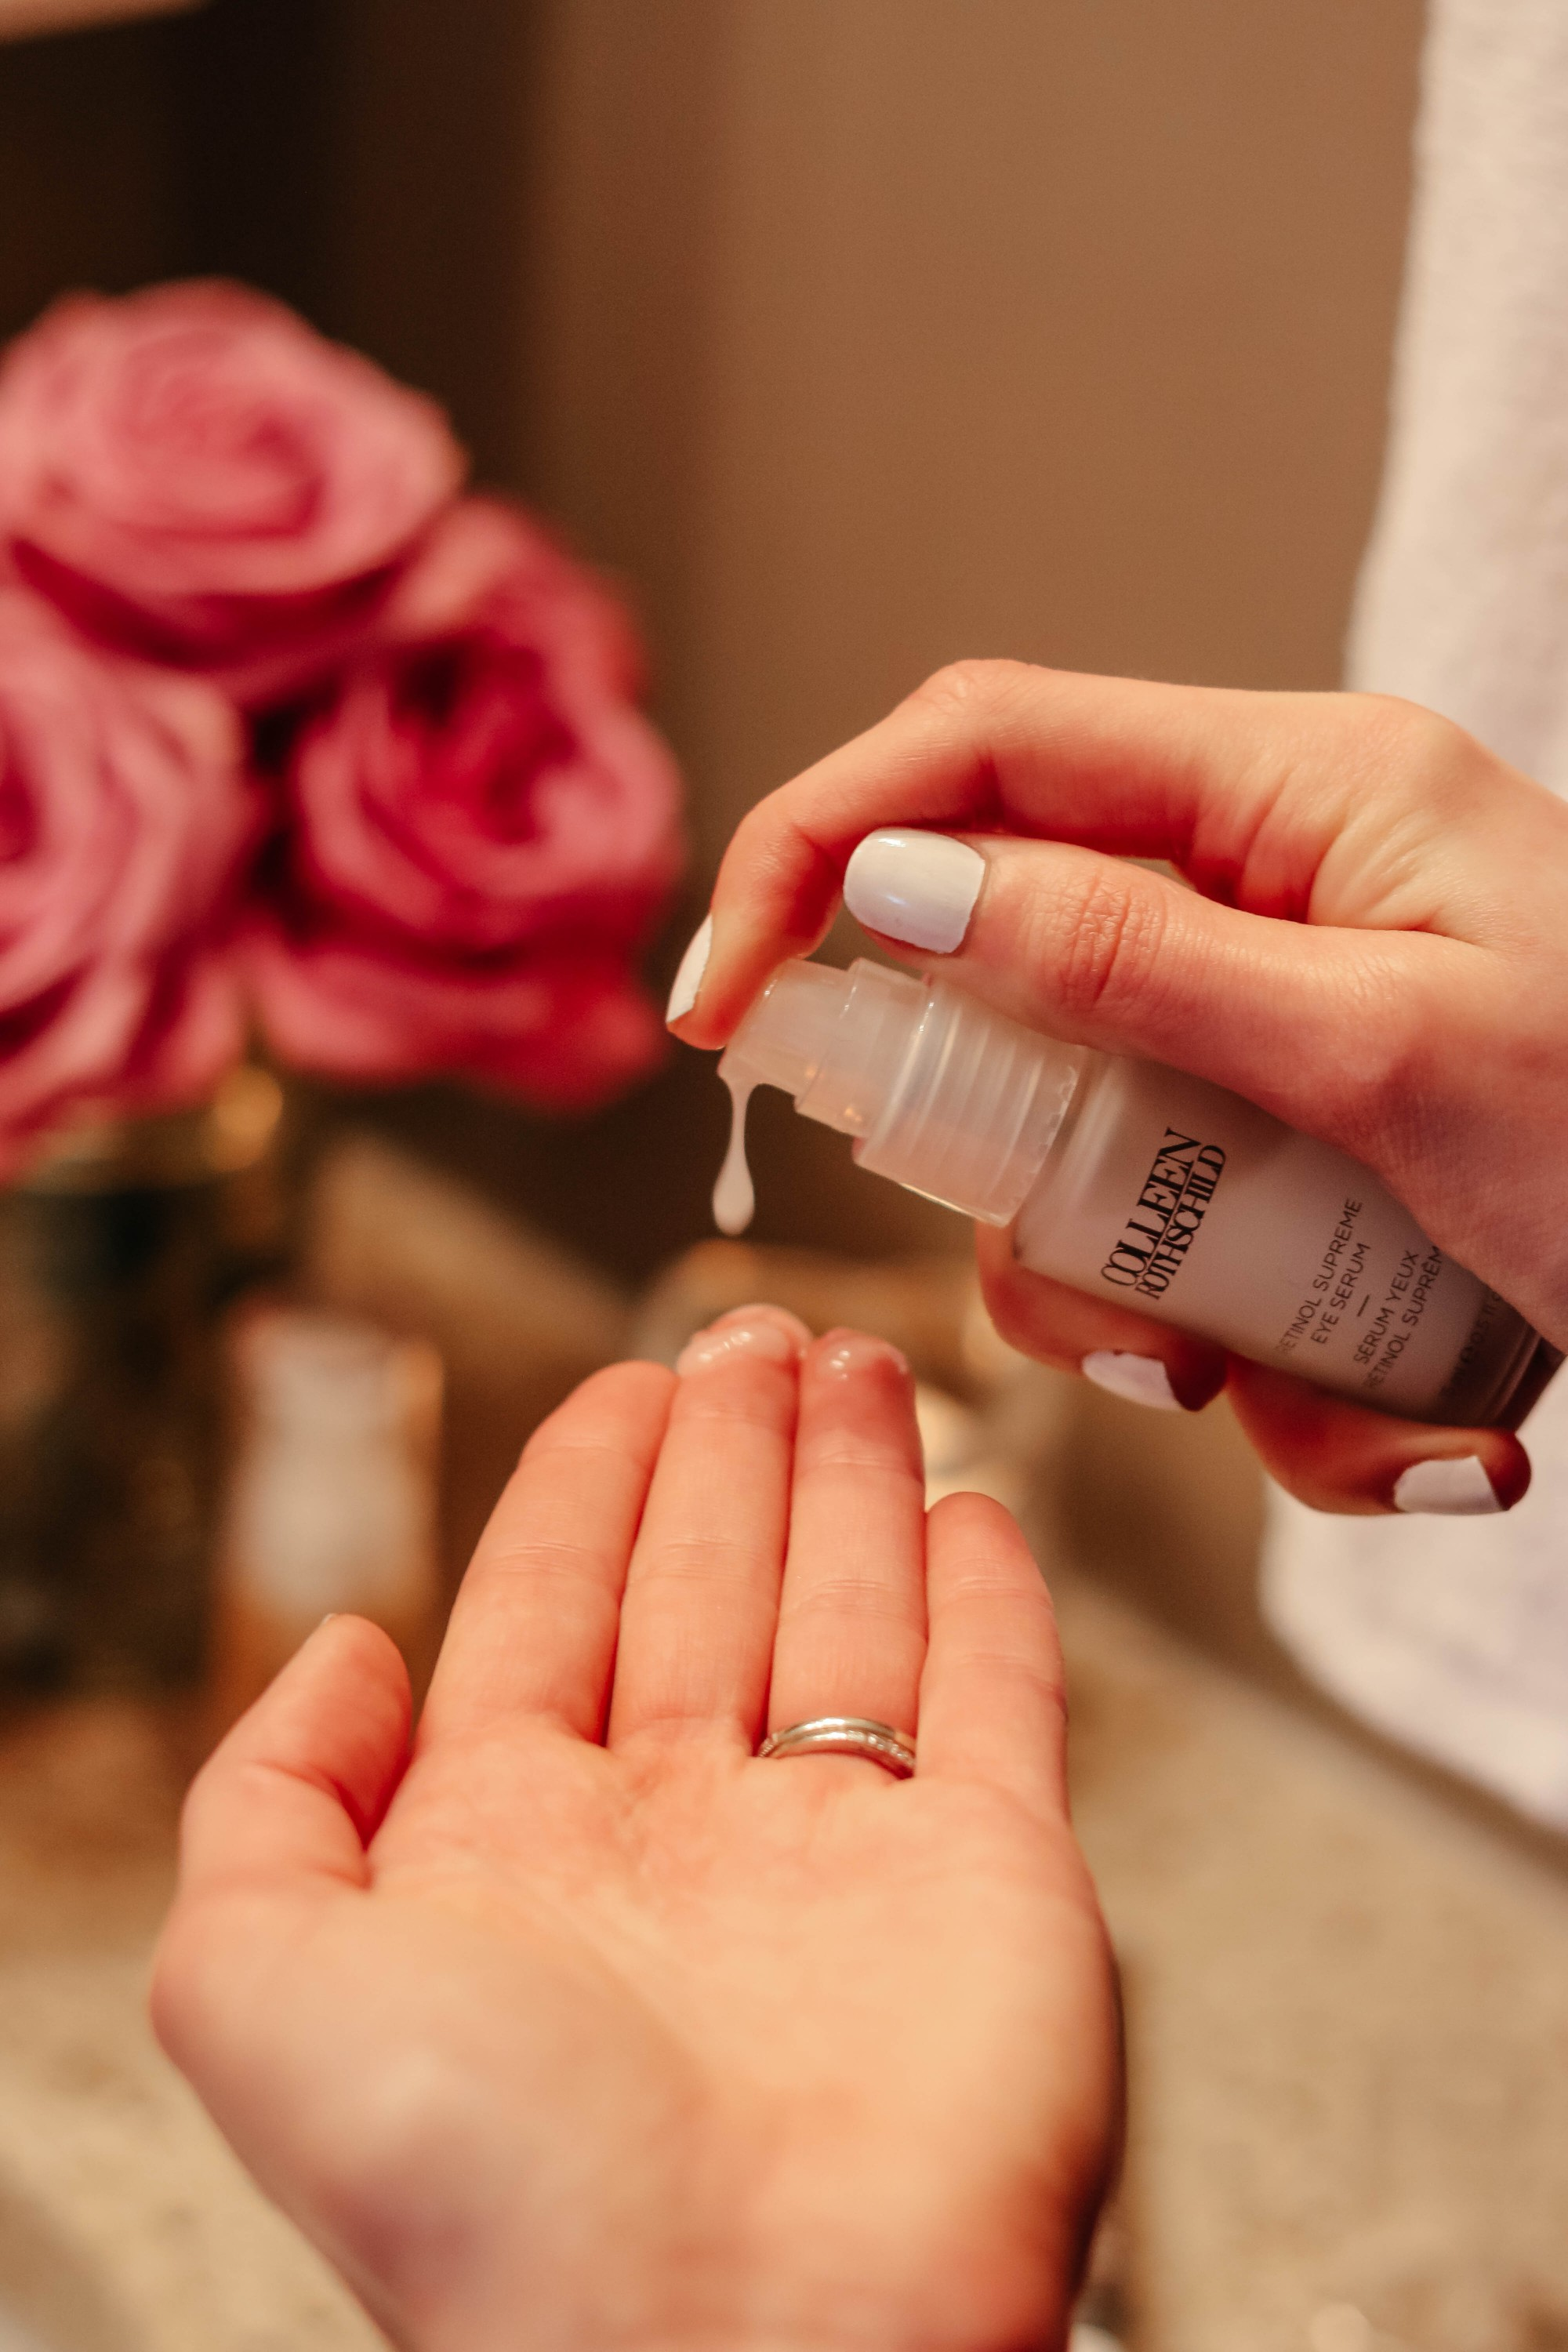 RETINOL 101: Everything you need to know about Retinol (+ why your skin needs it!) - with Colleen Rothschild on Coming Up Roses